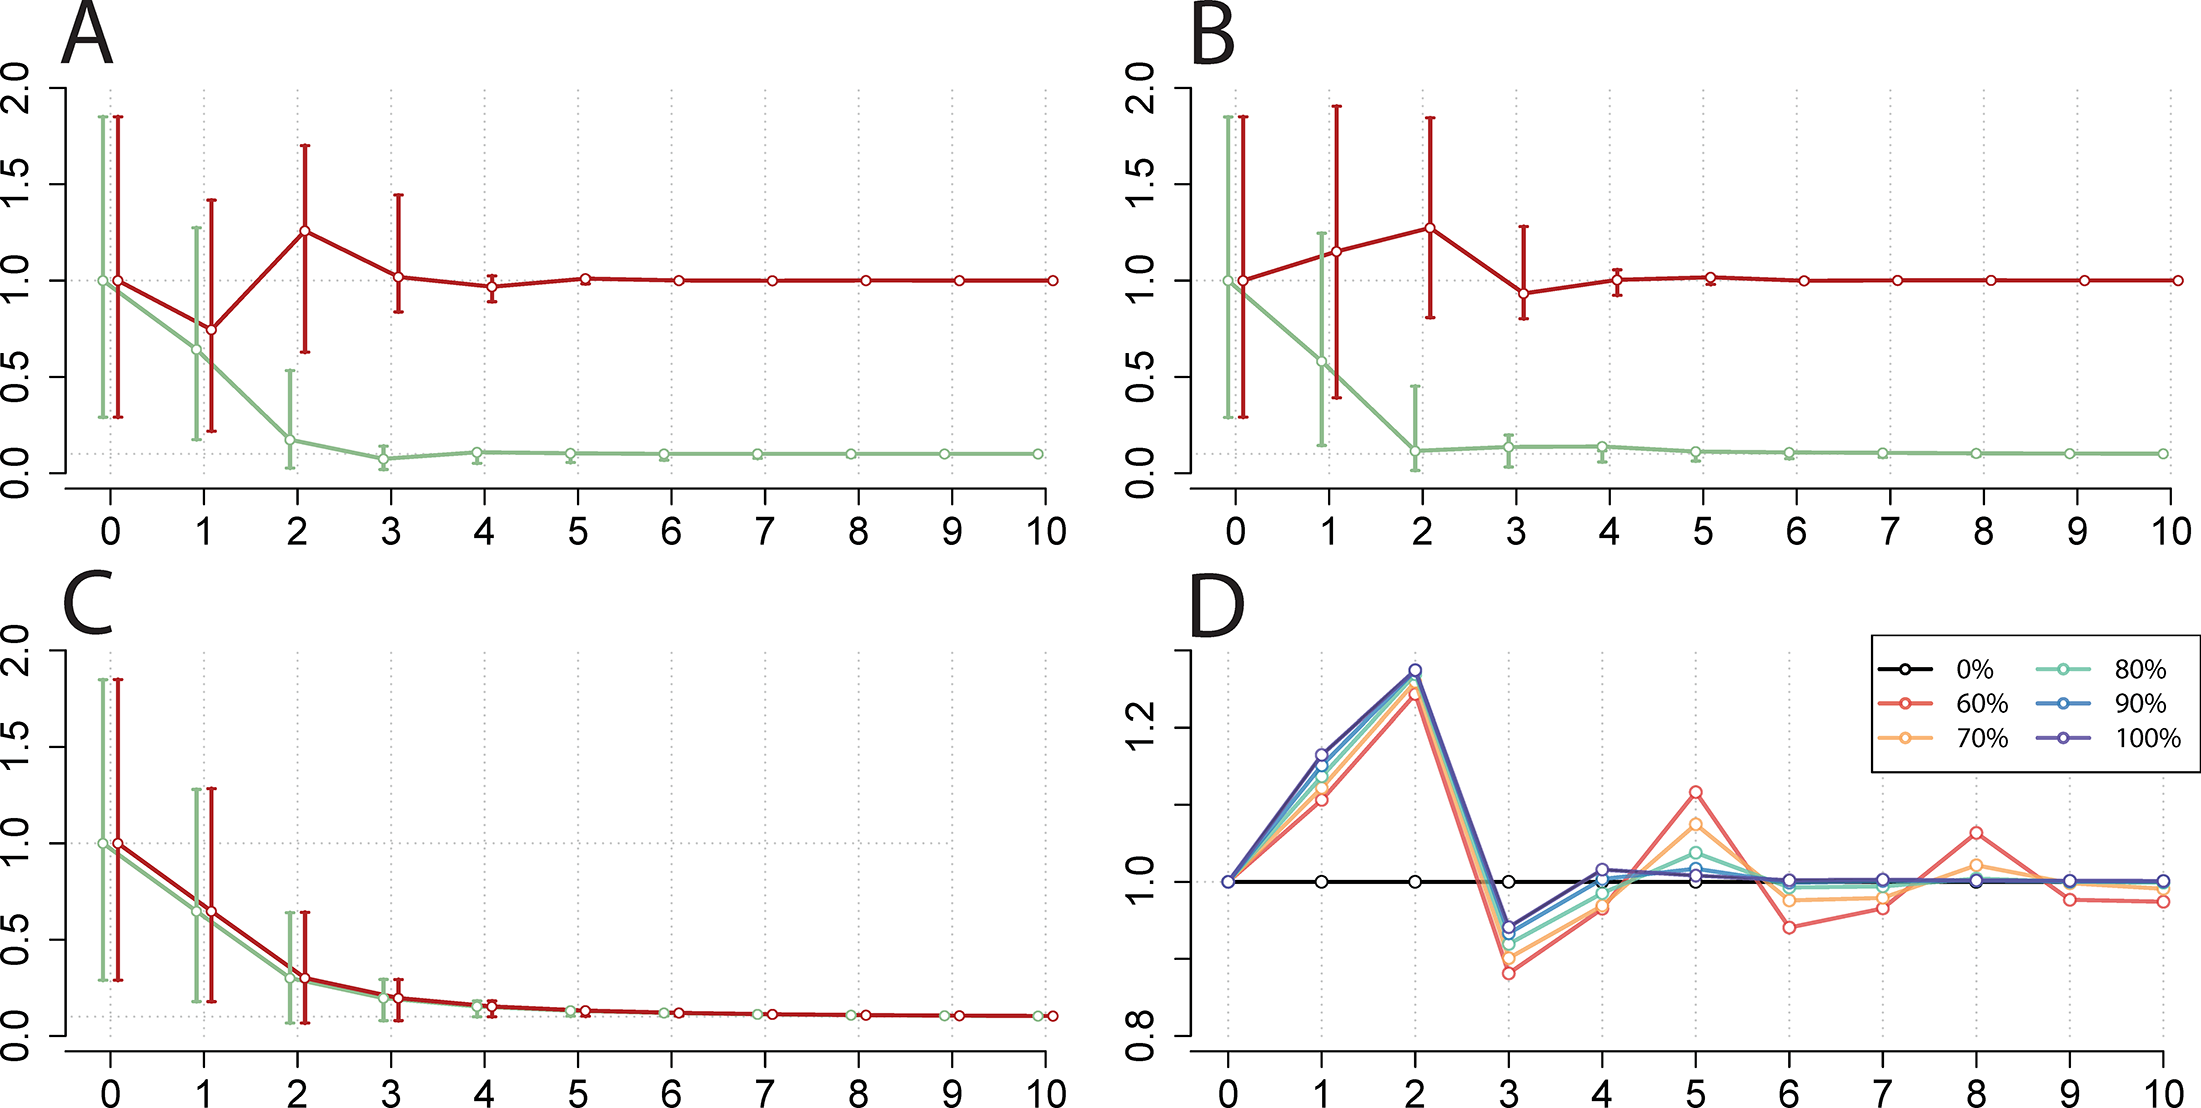 Simulation of national EV-A71 vaccination and corresponding change in CV-A16 incidence.